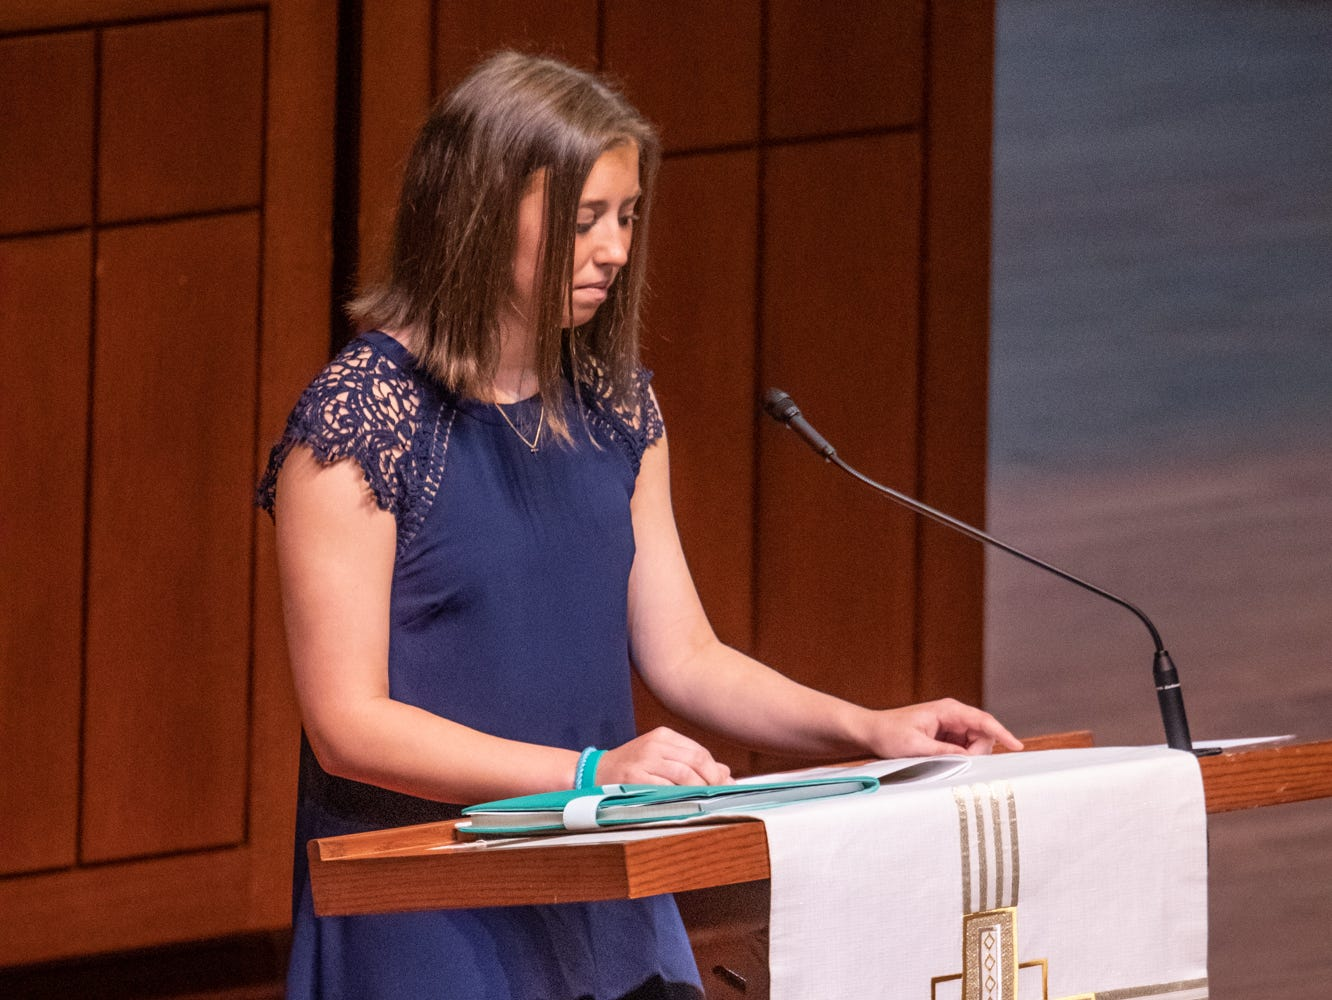 Elizabeth Lugar, granddaughter of former U.S. Sen. Richard Lugar, speaks during her grandfather's memorial service held at Saint Luke's United Methodist Church in Indianapolis, on Wednesday, May 15, 2019. Lugar served as mayor of Indianapolis from 1968 to 1975 and U.S. senator from 1977 to 2013. He died April 28, 2019, at the age of 87.